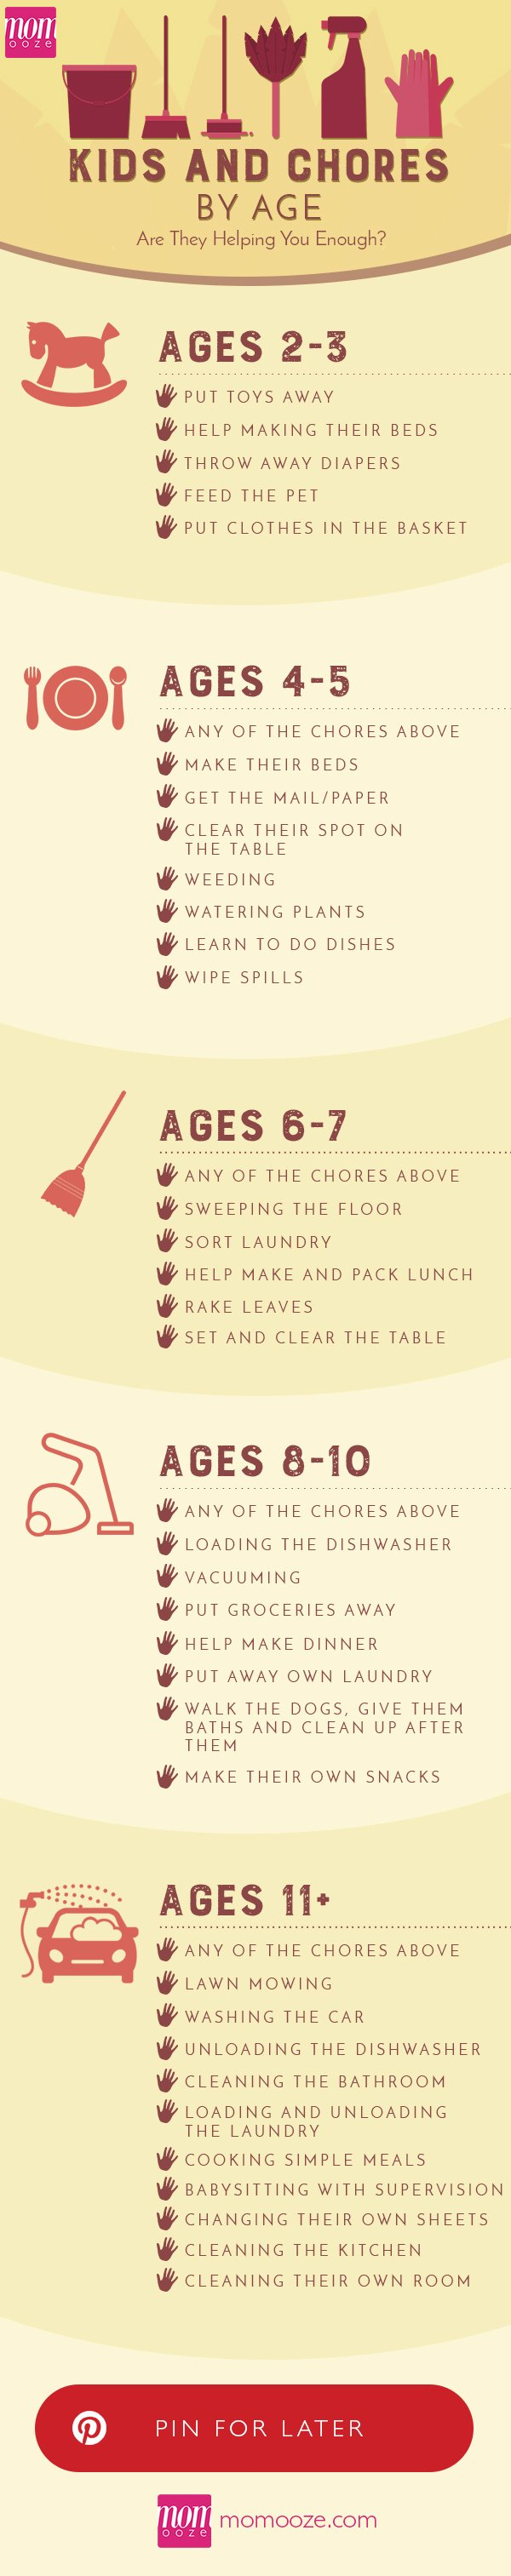 kids-and-chores-by-age